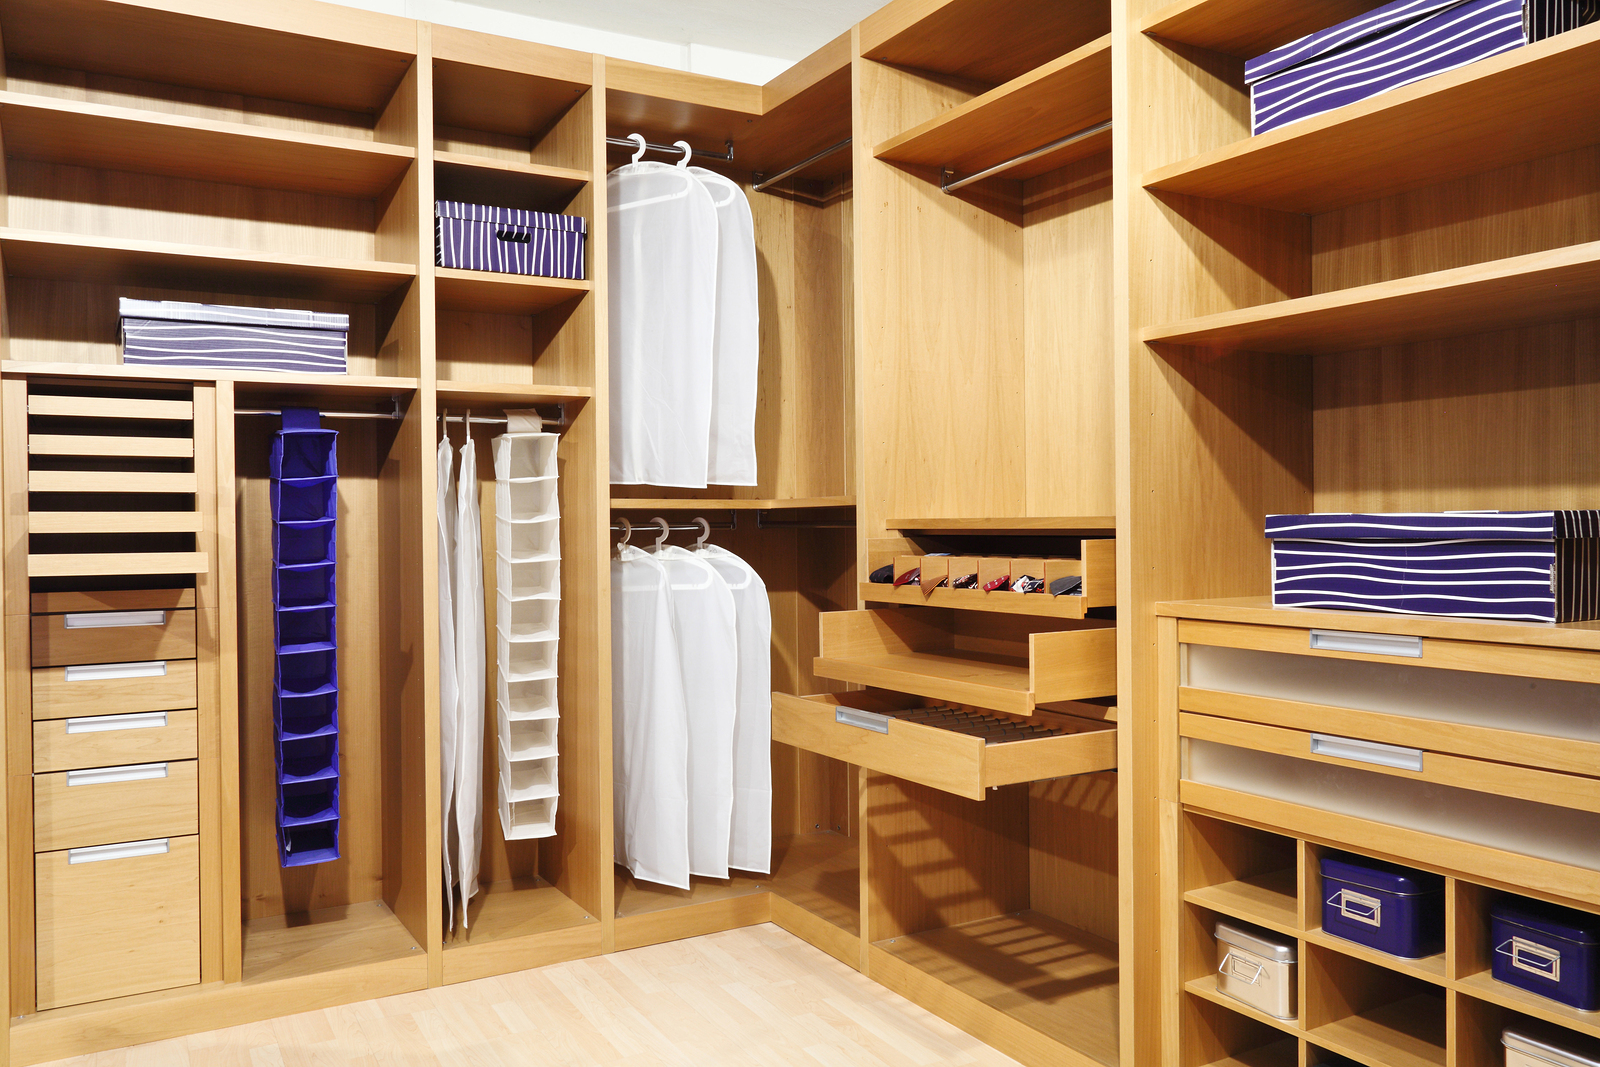 Design Tips For Custom Closets In NJ